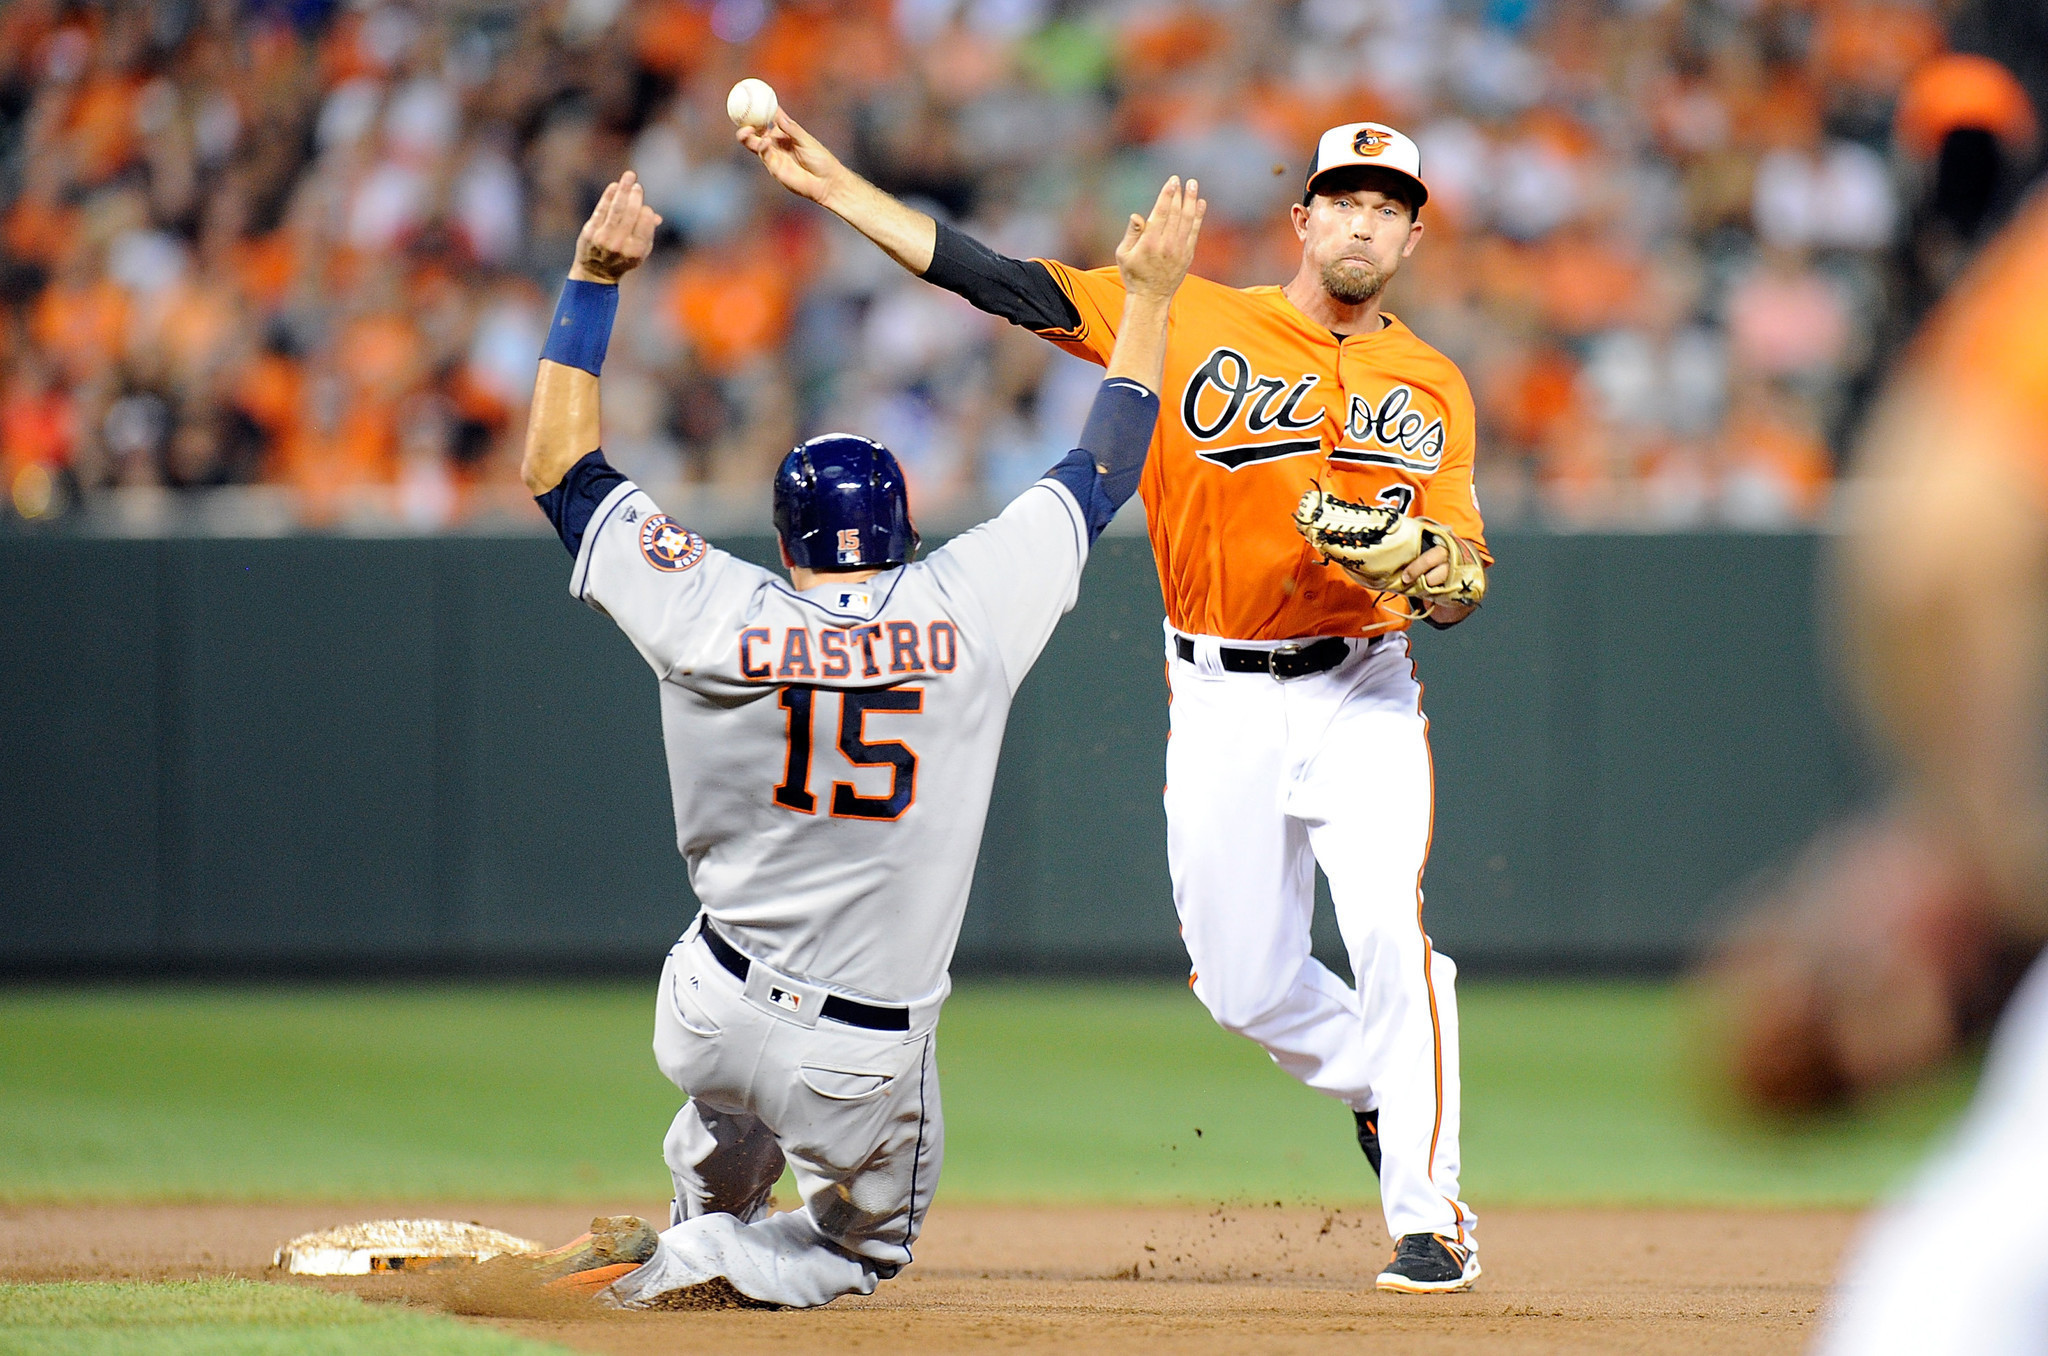 Bal-orioles-on-deck-what-to-watch-sunday-vs-astros-20160820